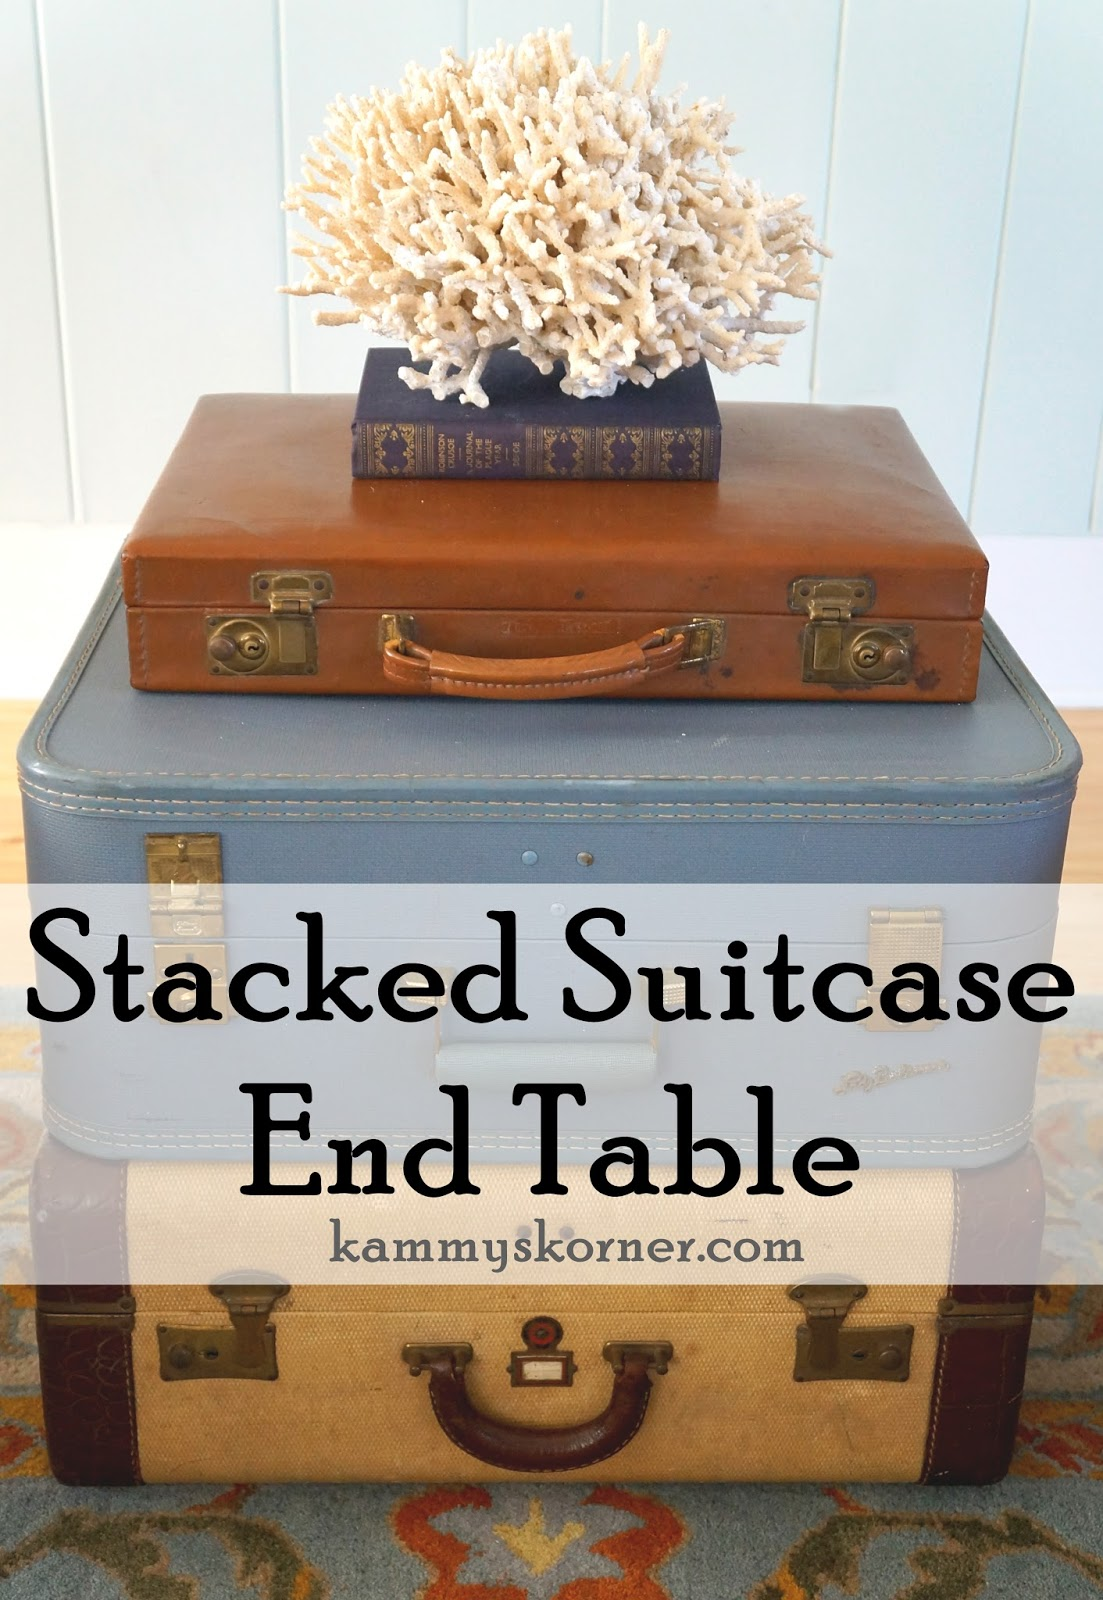 Vintage Suitcase End Table. I Really Donu0027t Feel Like This Blog Post Needs  Any Additional Information. The Pictures Say It All, Right? Get Some Old  Suitcases ...